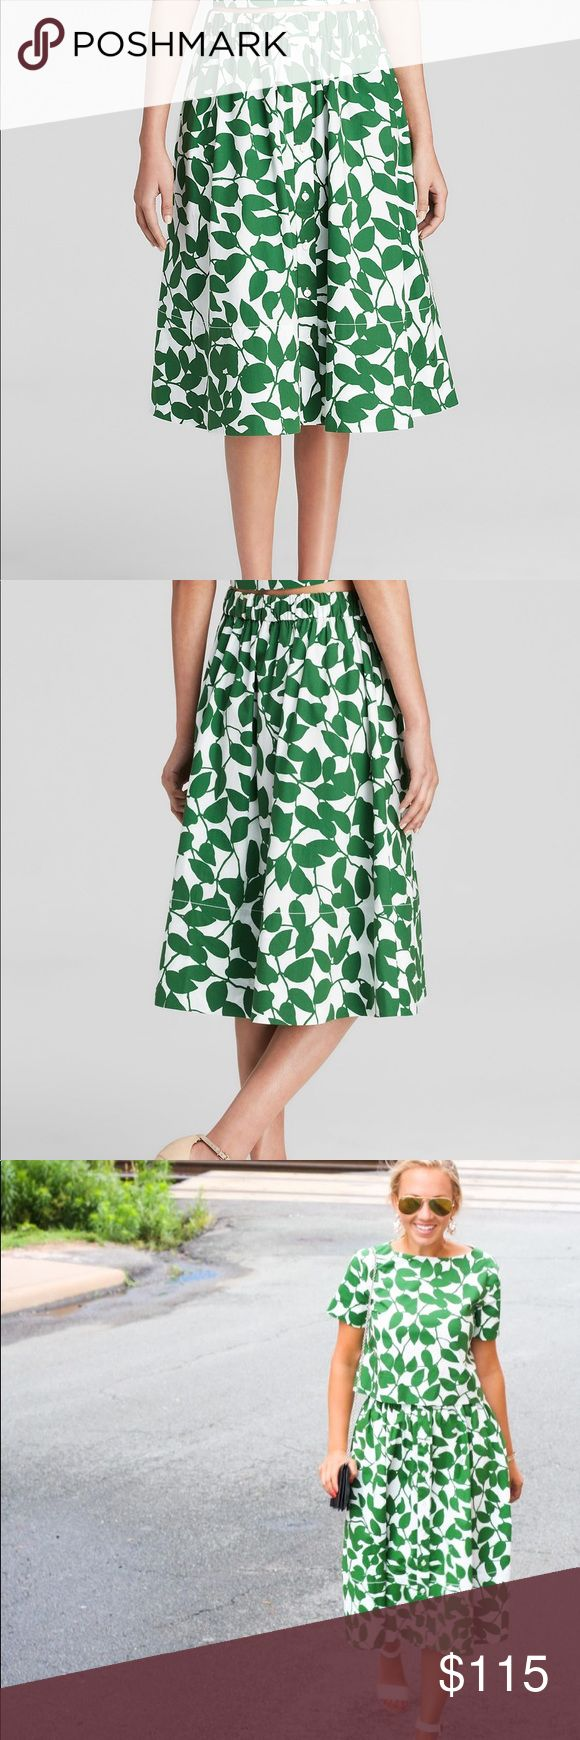 Kate Spade Garden Leaves Poplin Skirt (Size 6) Button front and stretch waist, worn maybe twice, in excellent condition!! Runs a tad big (if you are a true 6 it will be okay, but if you are a true 4 it will probably be too big) kate spade Skirts Midi